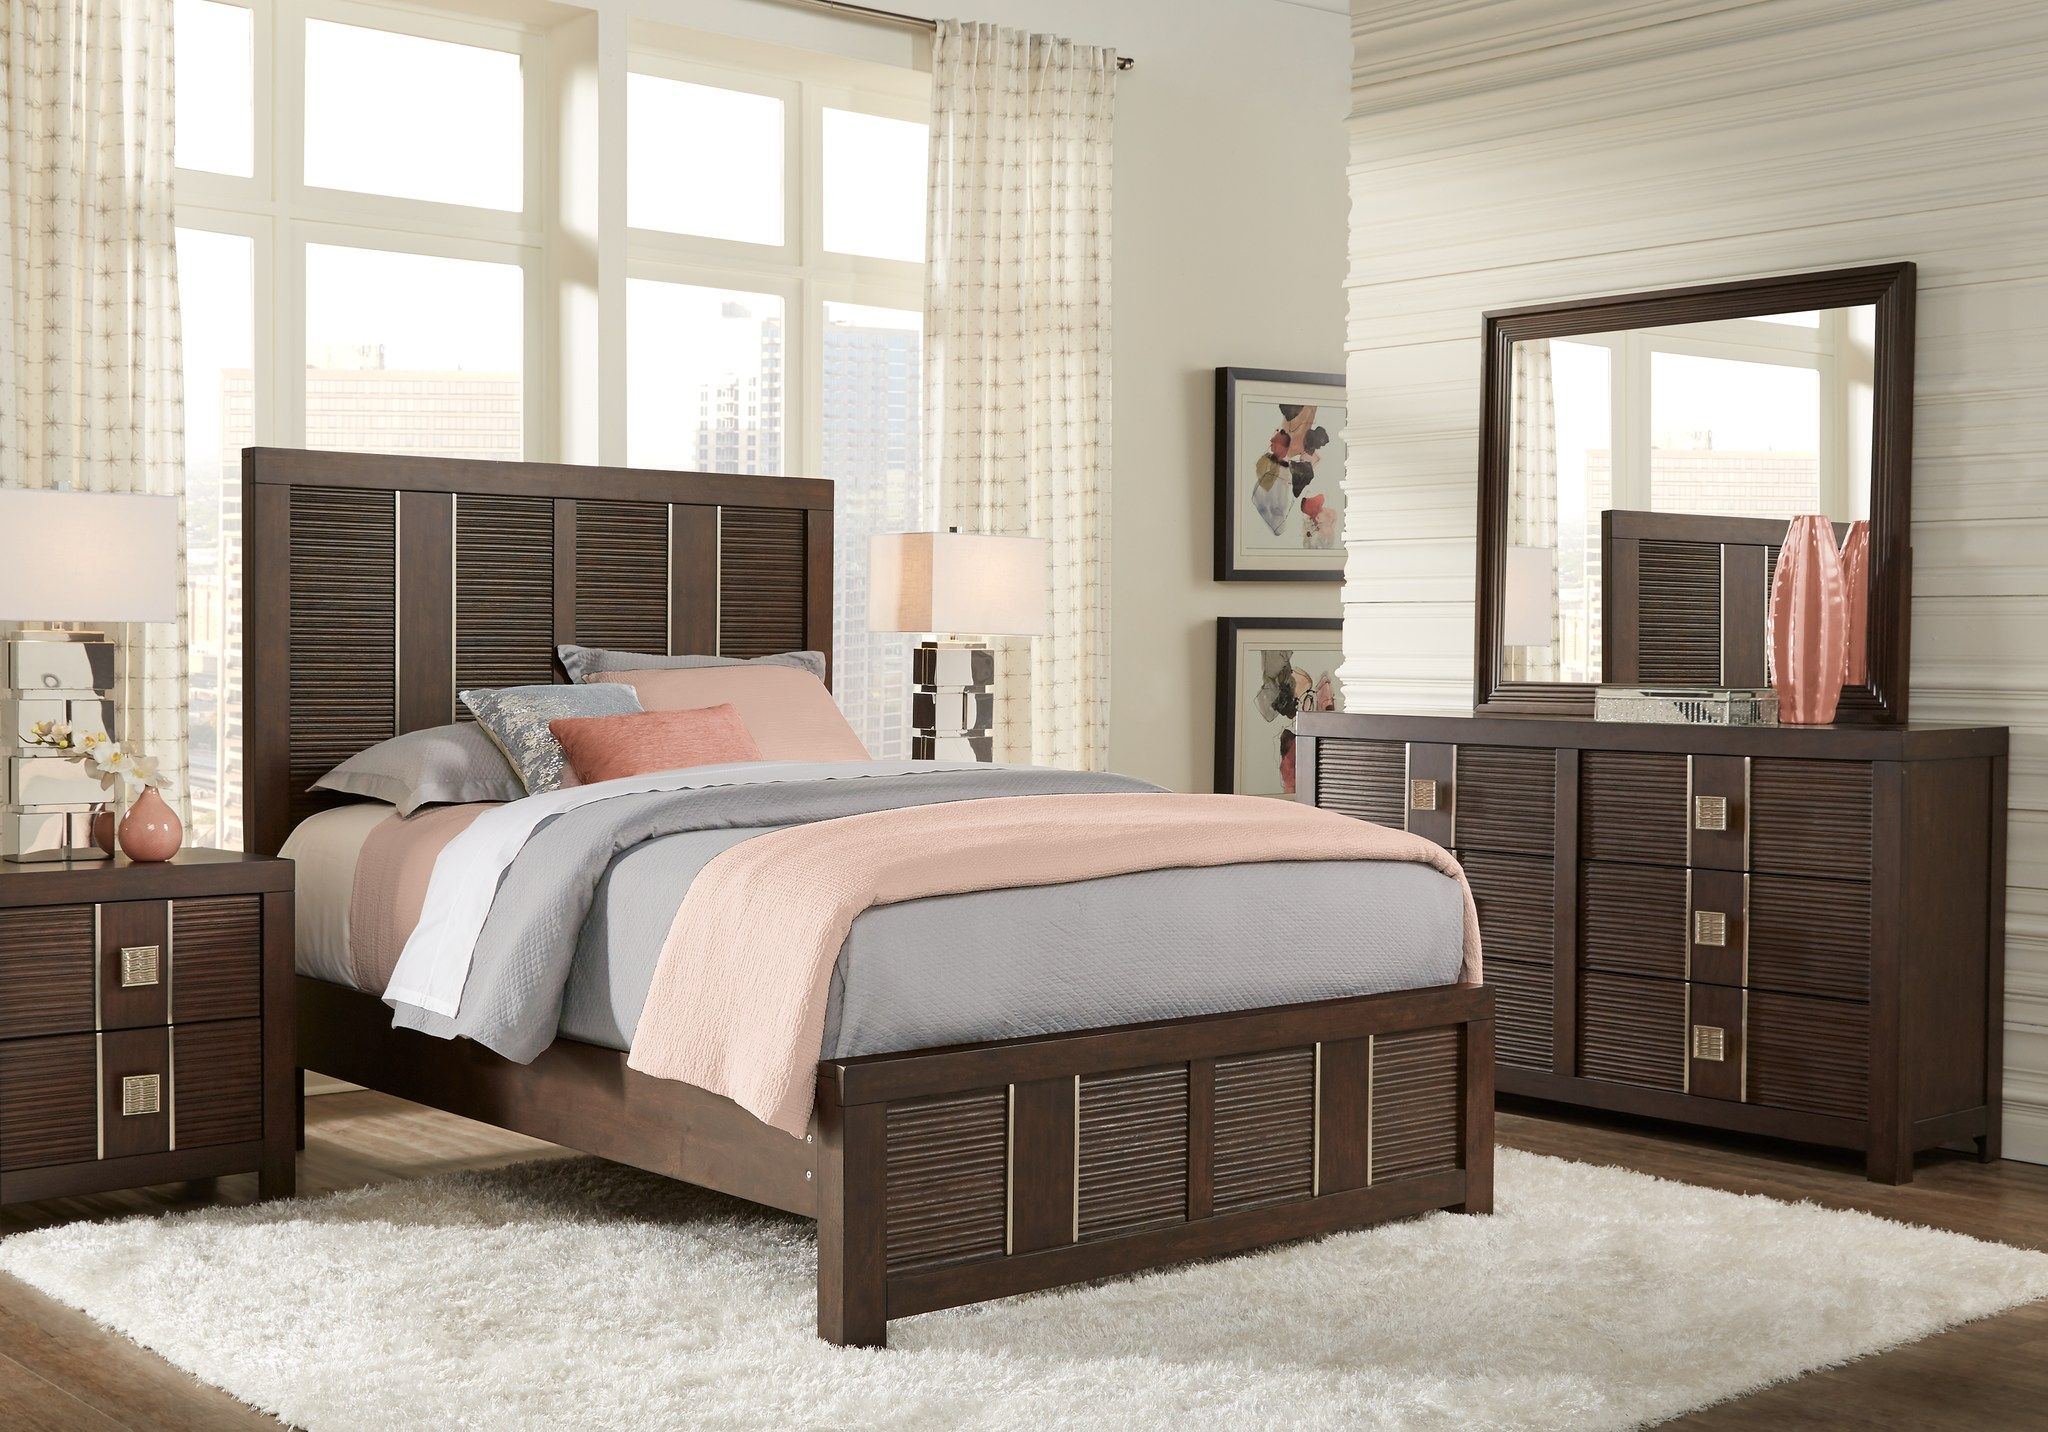 Best King Size Bedroom Sets Suites For Sale With Images 640 x 480